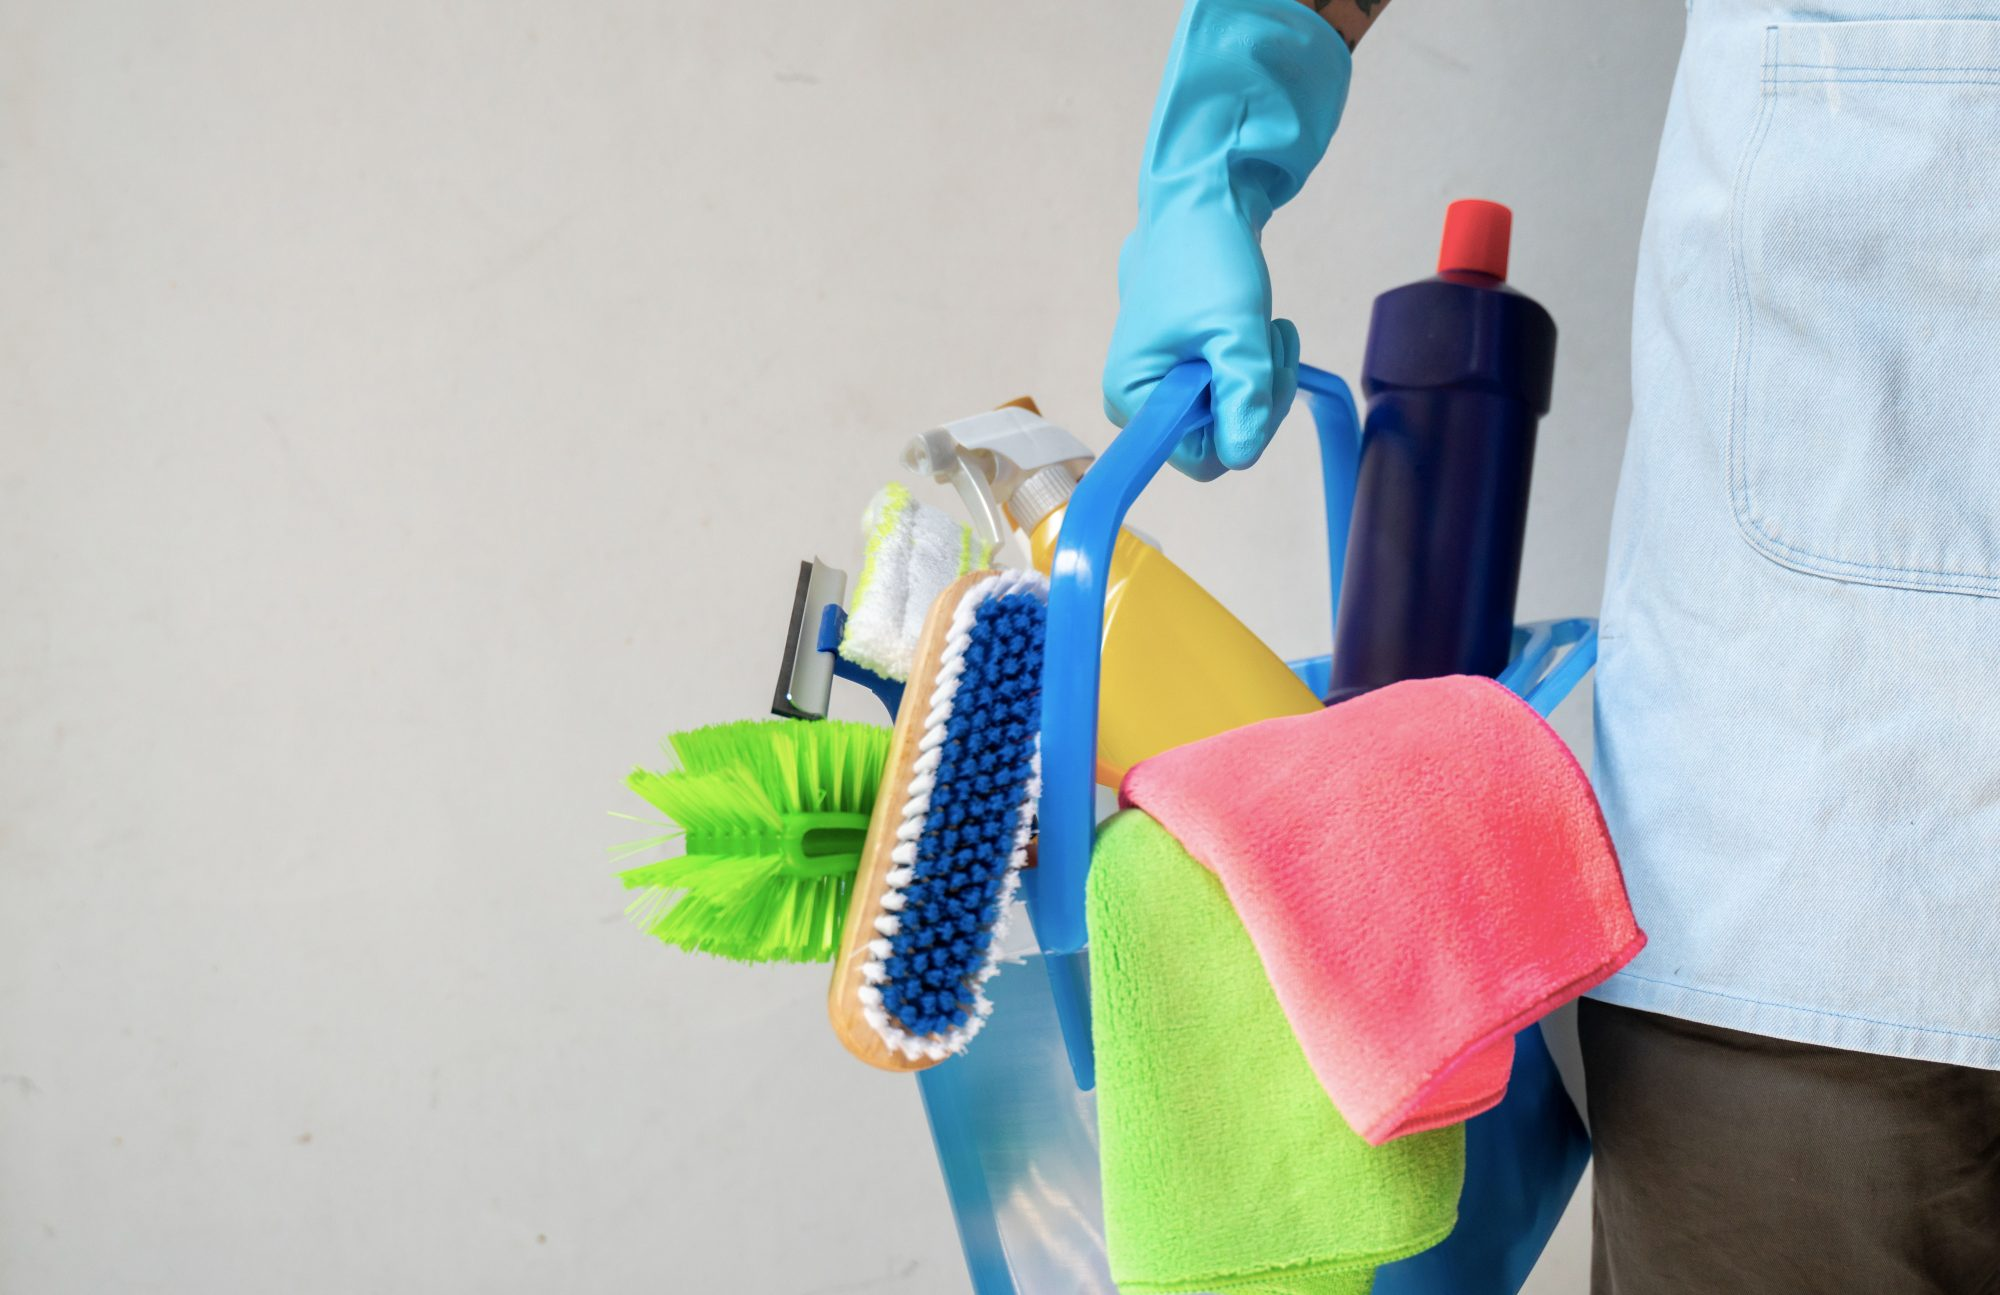 Gloved Hand Holding Cleaning Supplies